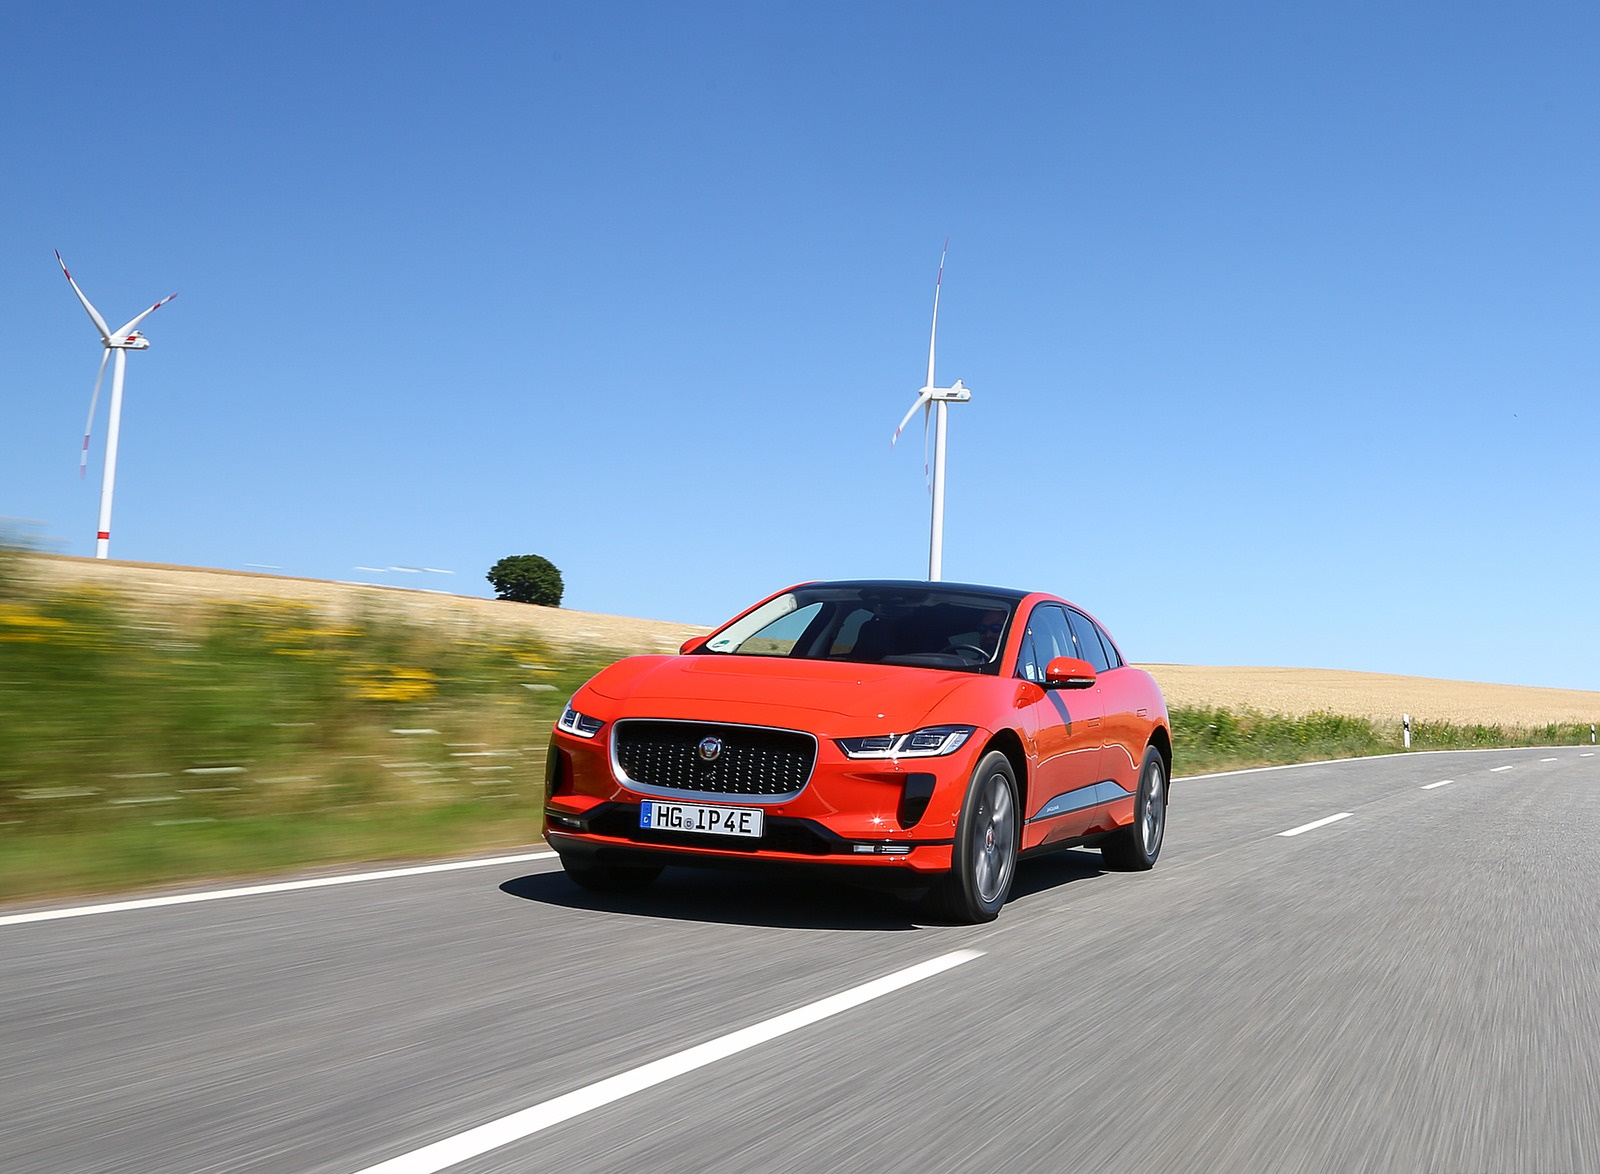 2019 Jaguar I-PACE EV400 AWD HSE First Edition (Color: Photon Red) Front Wallpapers #24 of 192